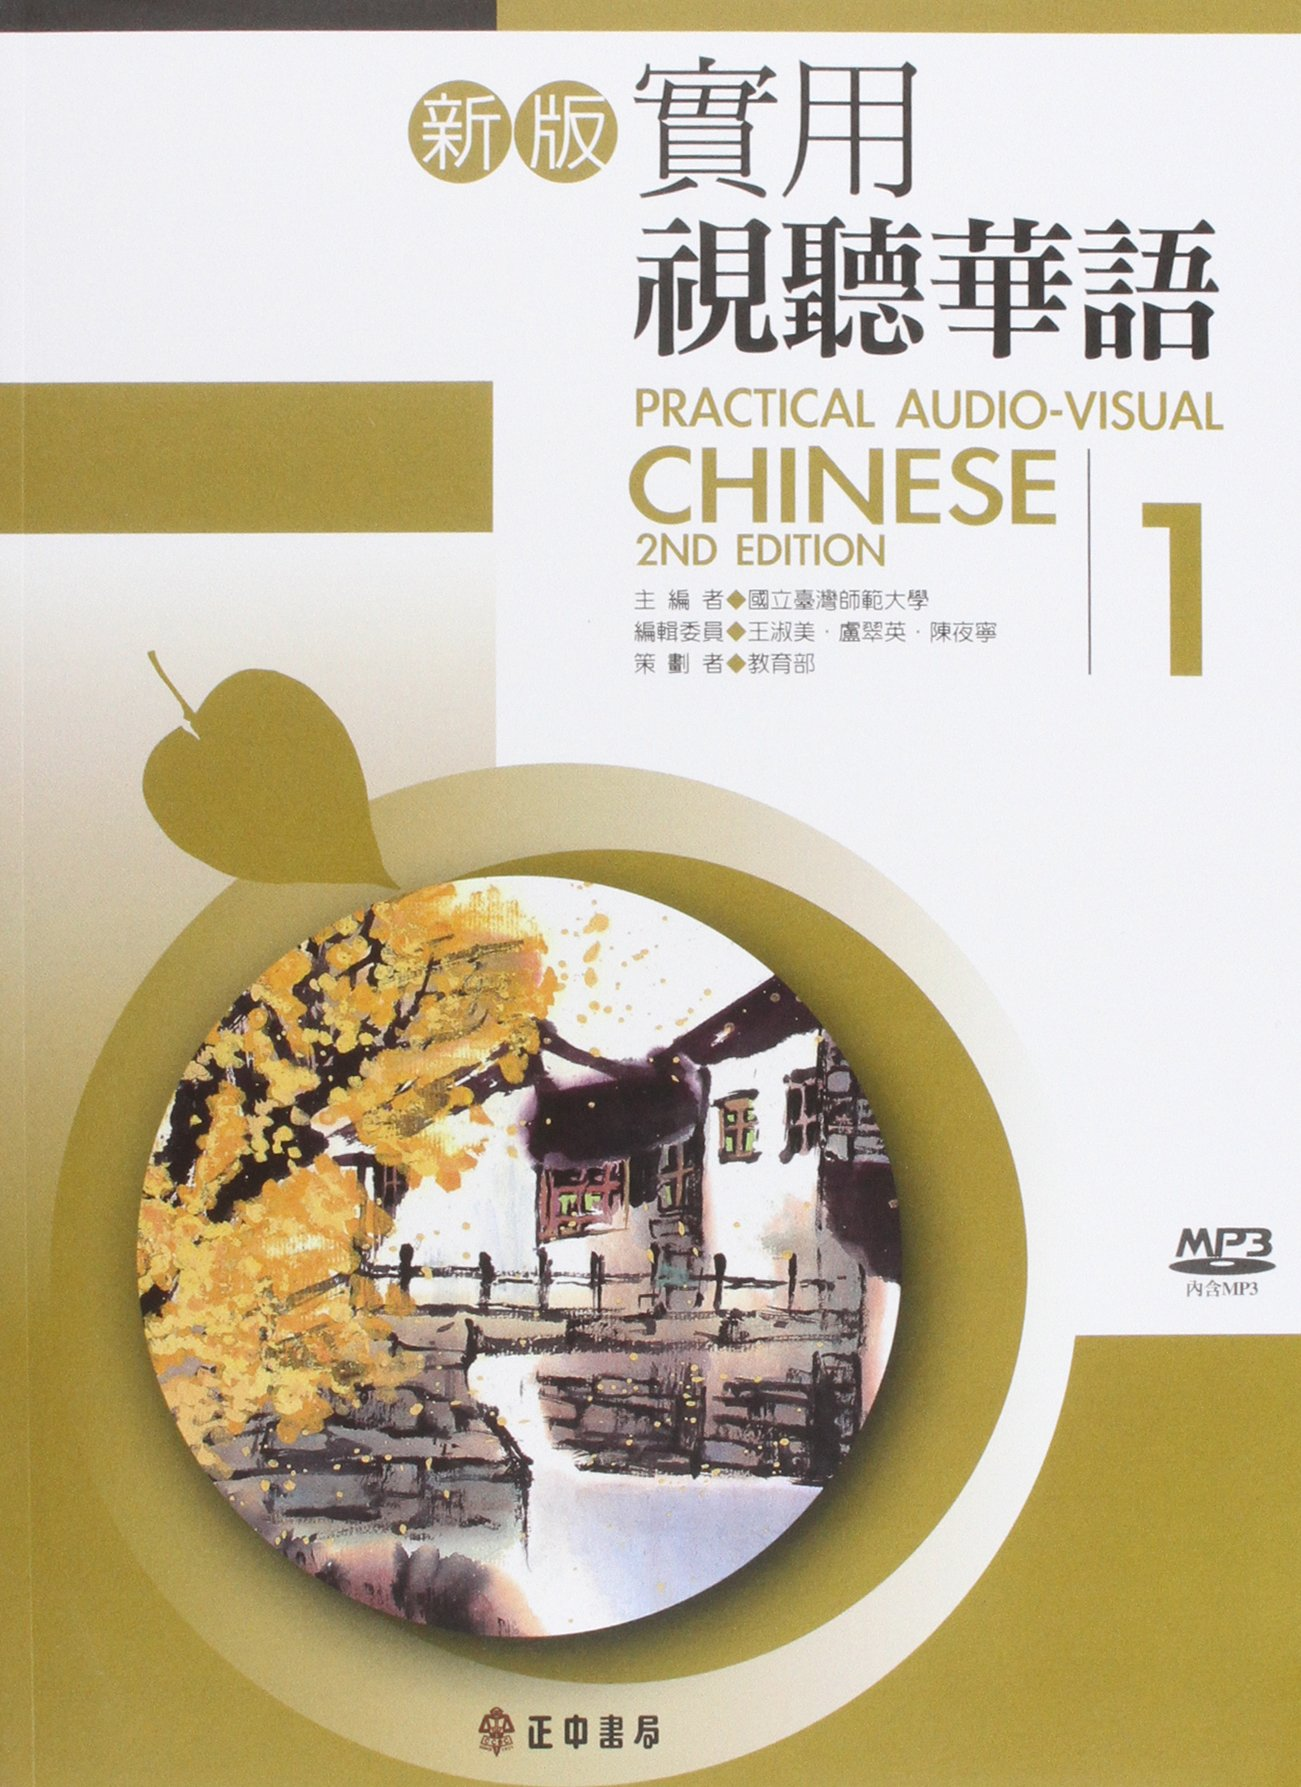 Practical Audio-Visual Chinese 1 2nd Edition (Book+mp3) (Chinese Edition) by Zheng Zhong/ Tsai Fong Books